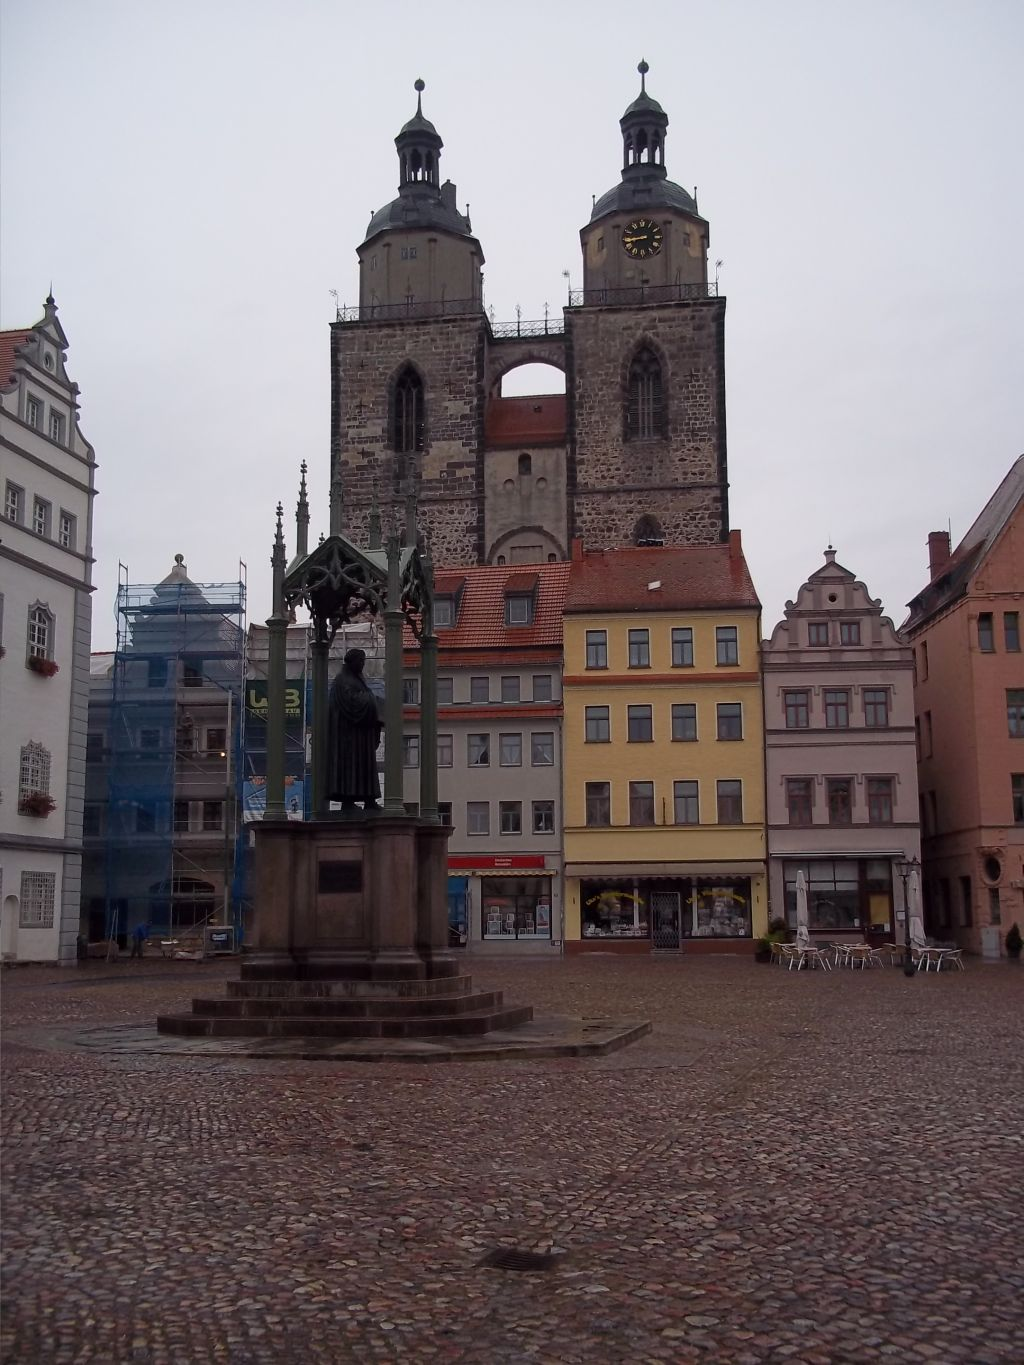 Wittenberger Stadtkirche Luther memorial town,cycling tour partner wanted